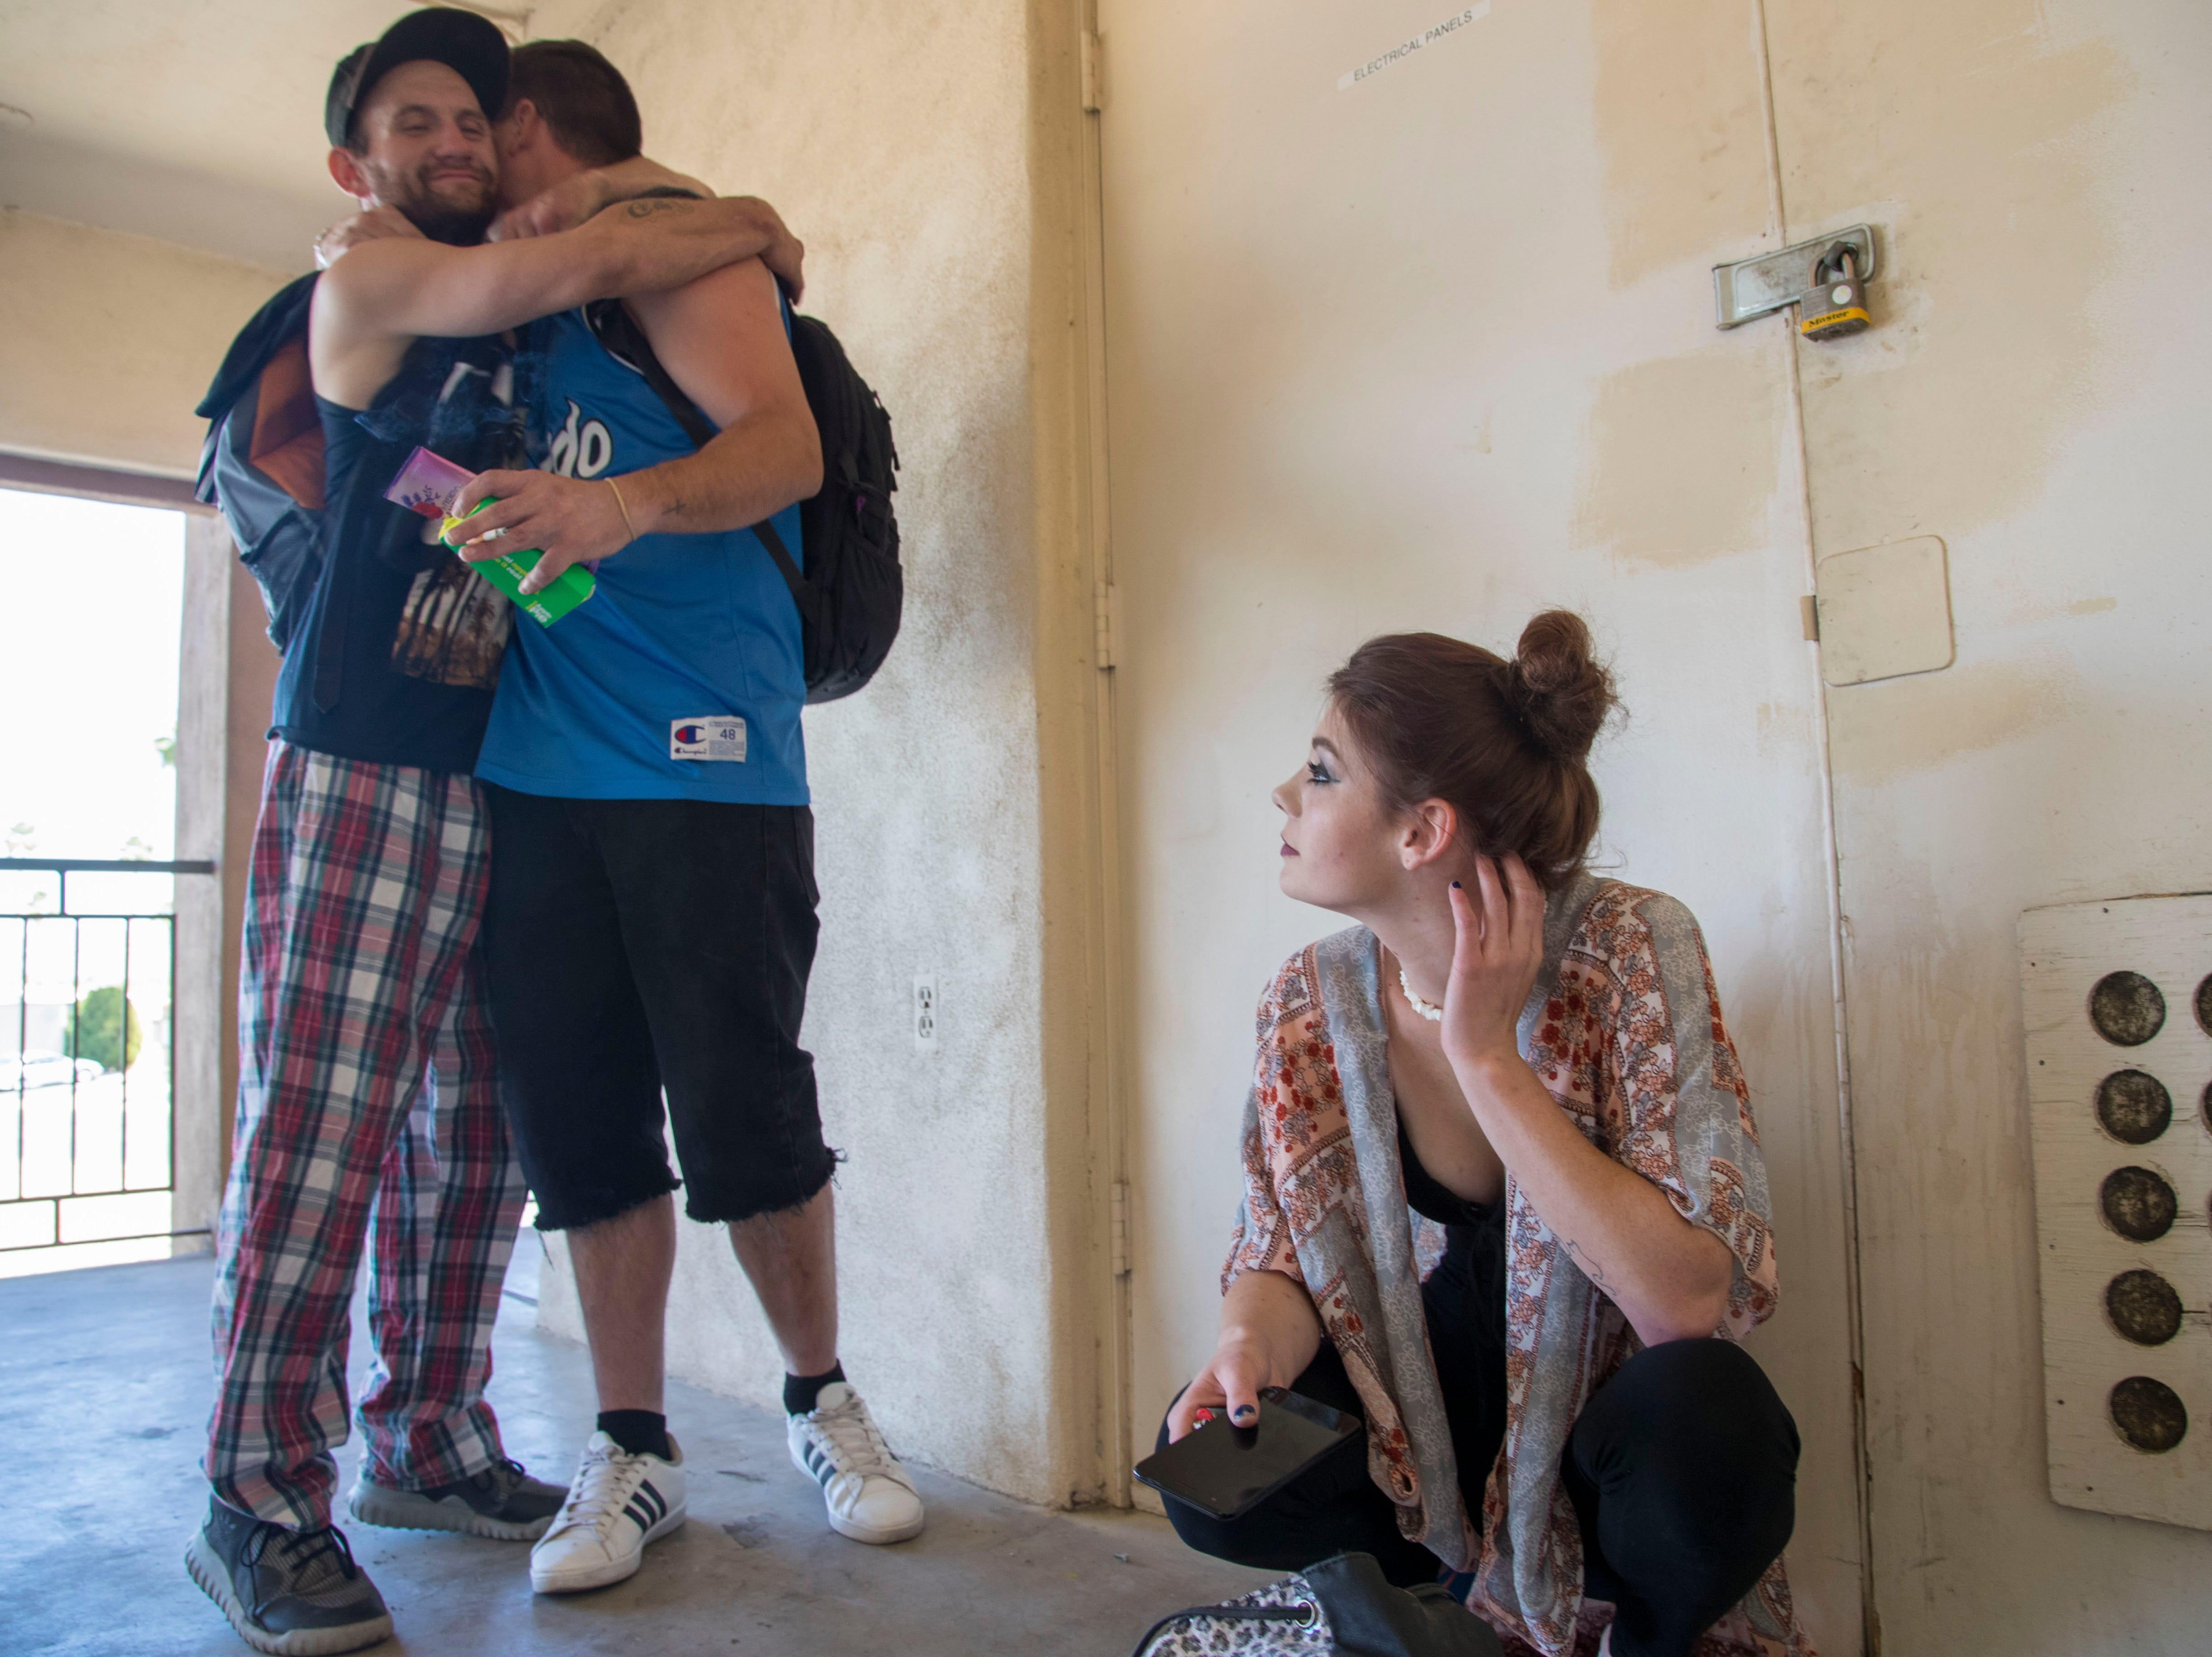 """After his release from jail, Cody Ramos vowed to stay away from the friends he once had that were still involved in using drugs. """"Being sober and healthy, it's way easier to set that boundary now,"""" Ramos said."""